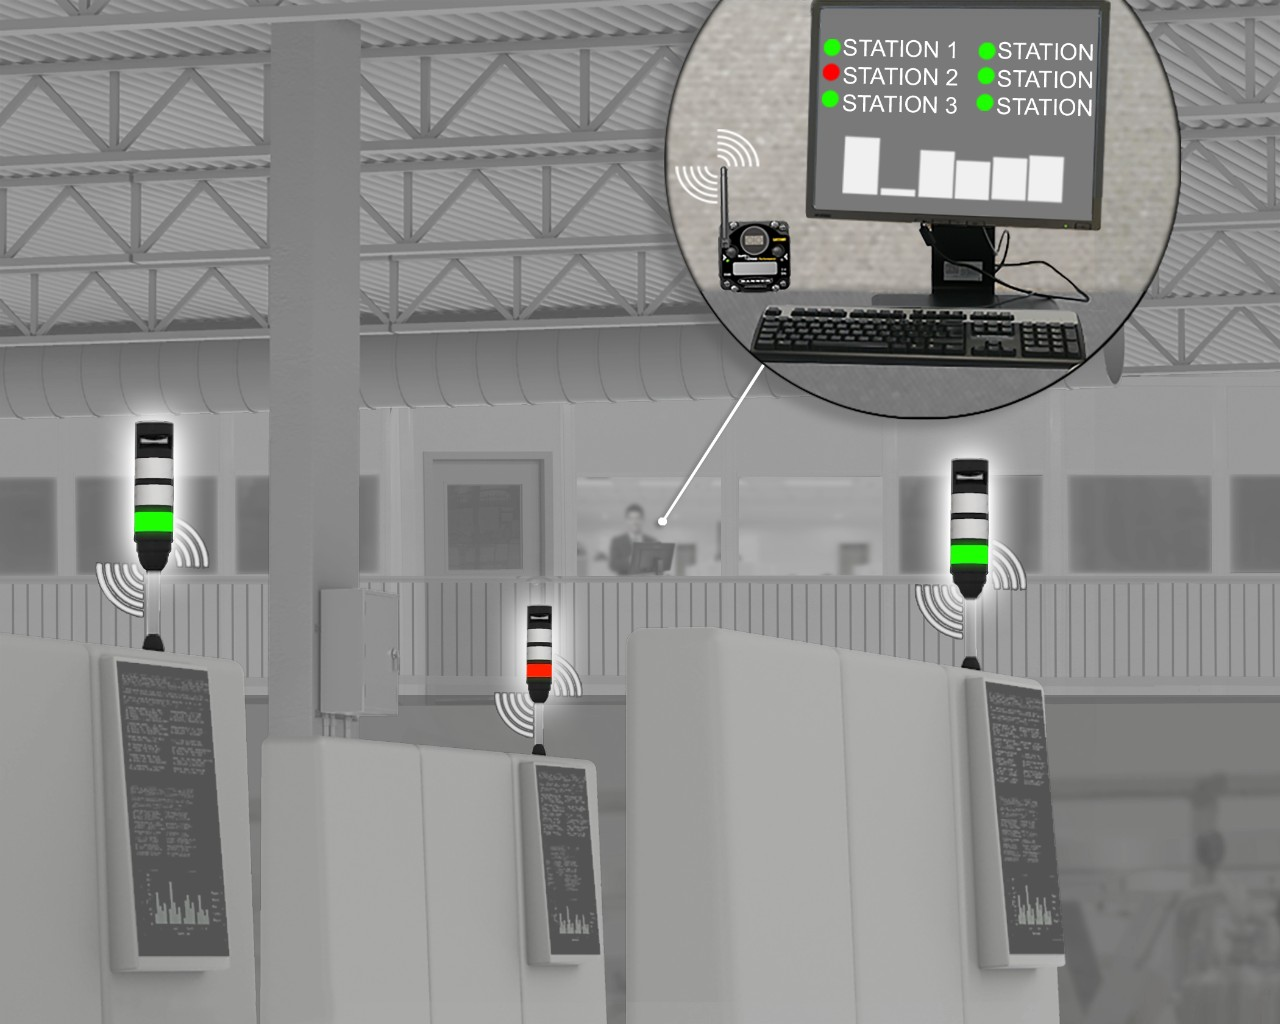 Wireless networks for predictive maintenance